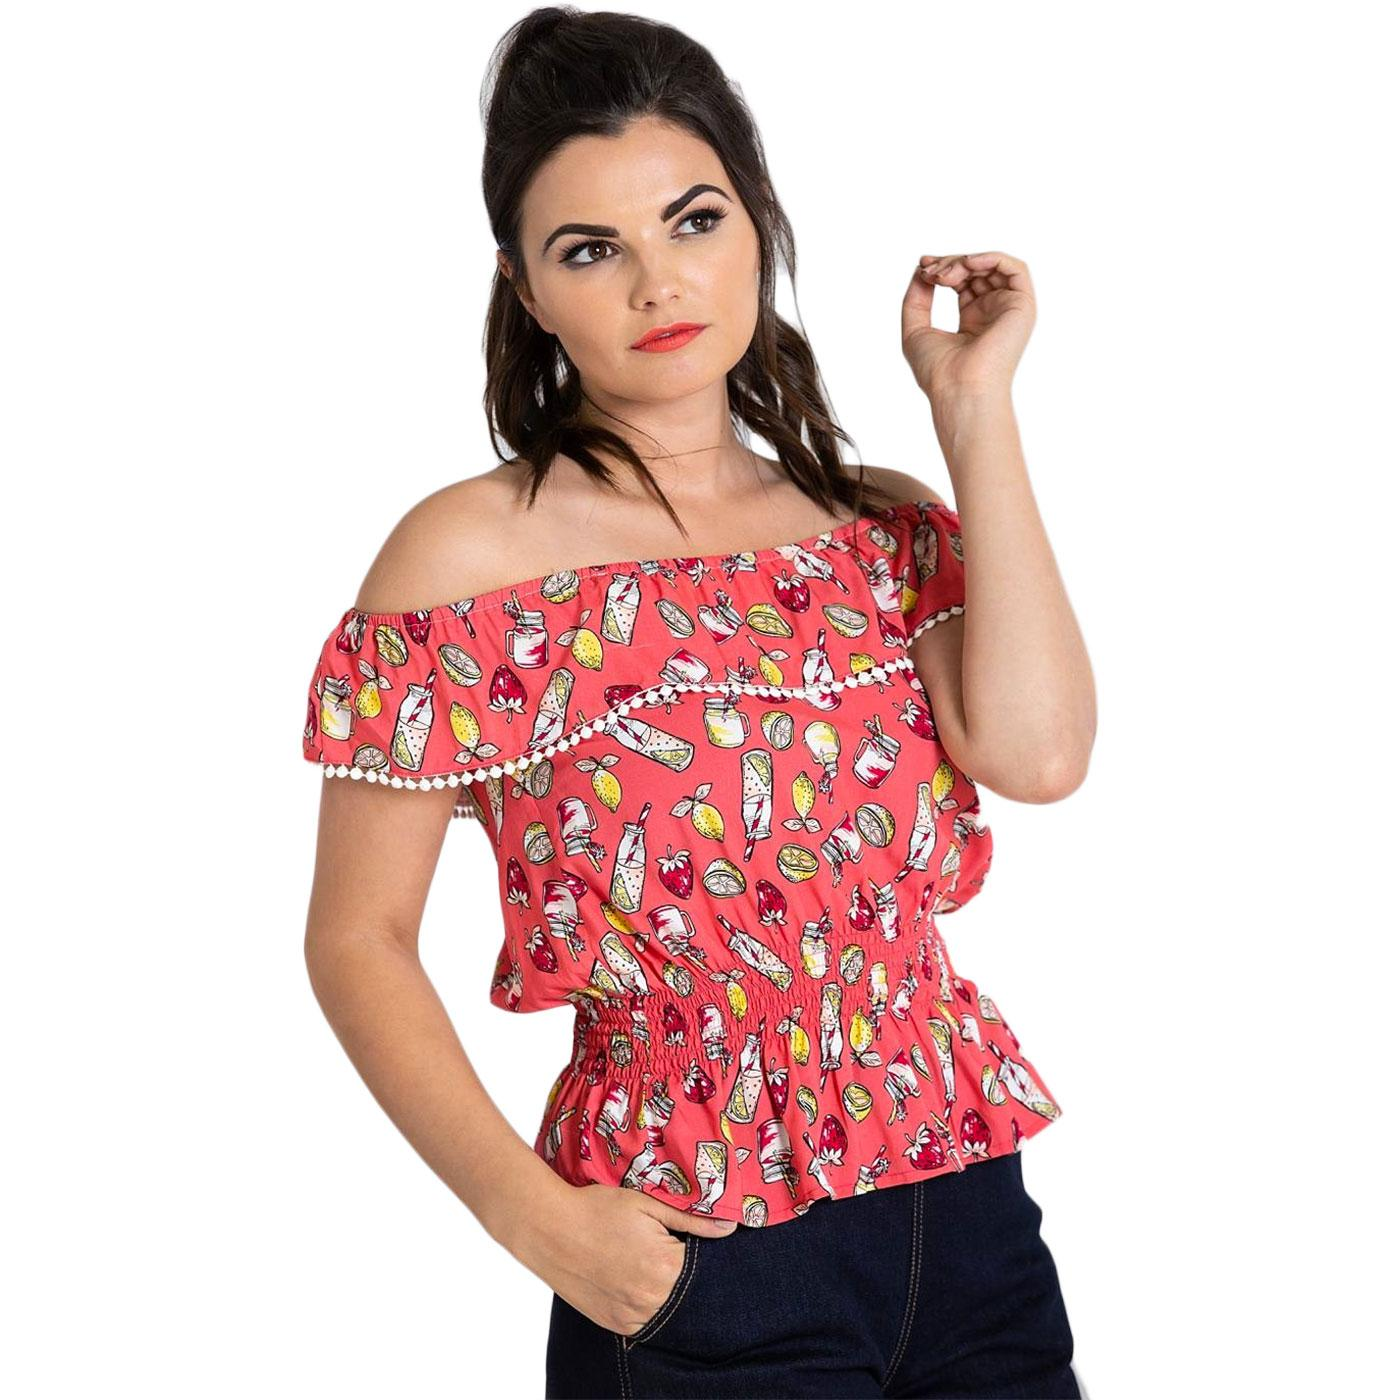 Gin Fizz HELL BUNNY Retro 50s Off The Shoulder Top